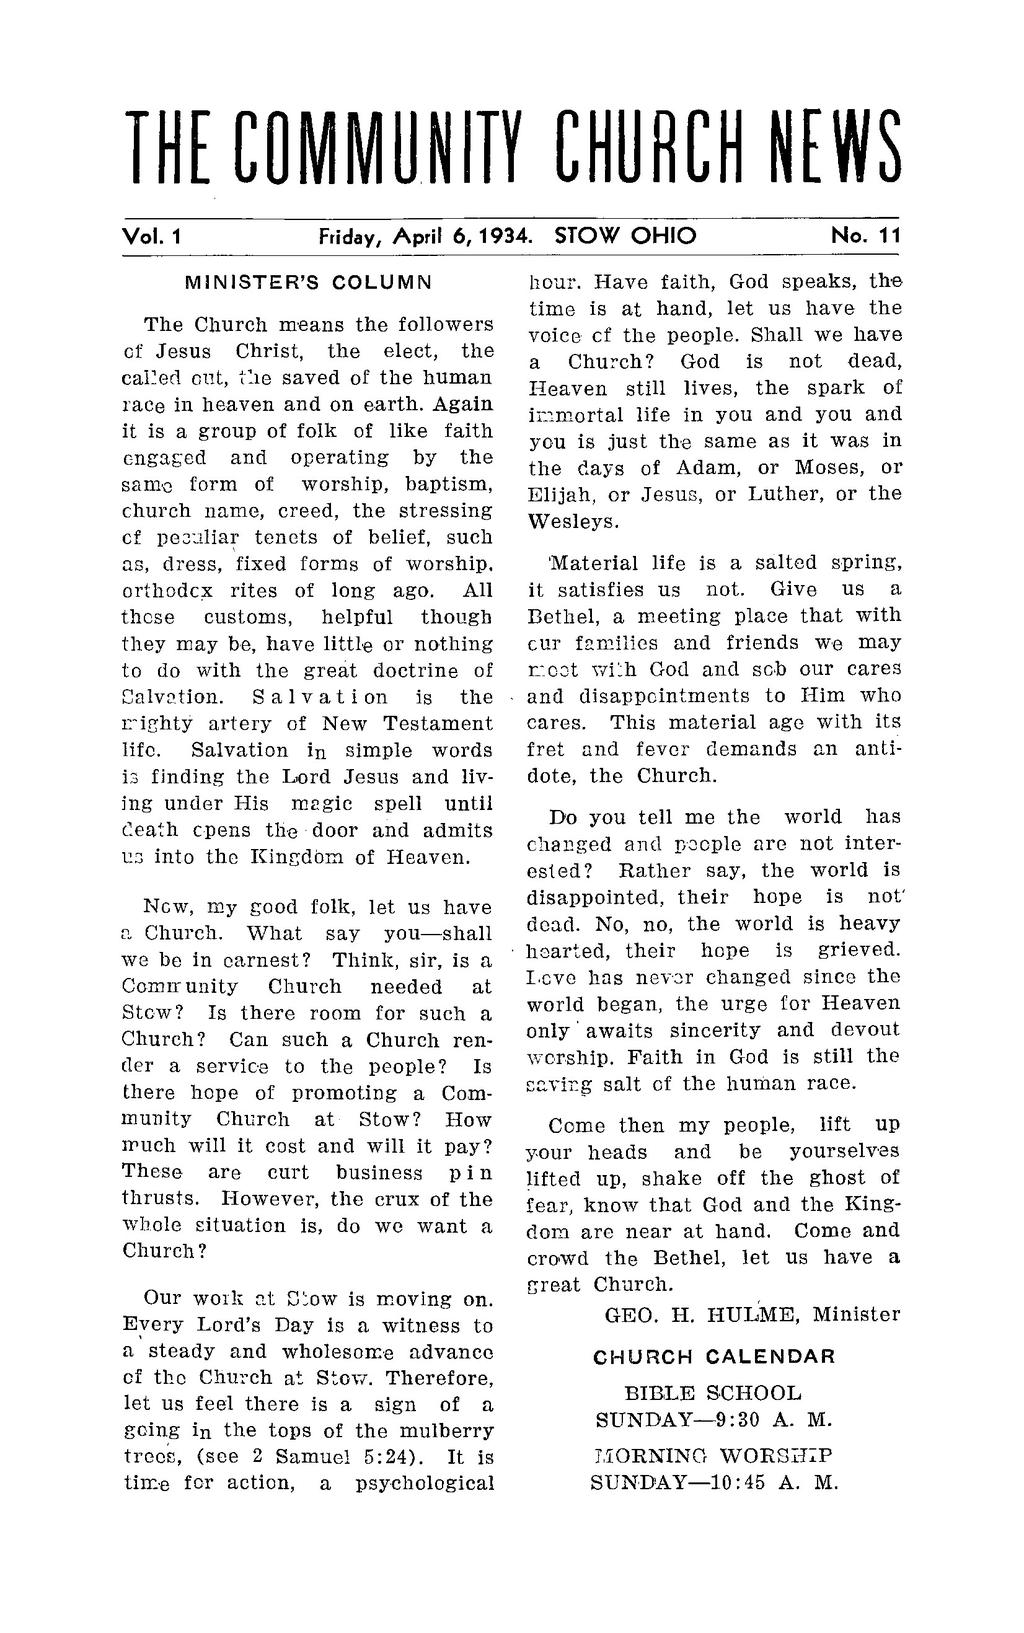 THE COMMUNITY -CHURCH NEWS Vol. 1 Friday, April 13, 1934. STOW OHIO No.